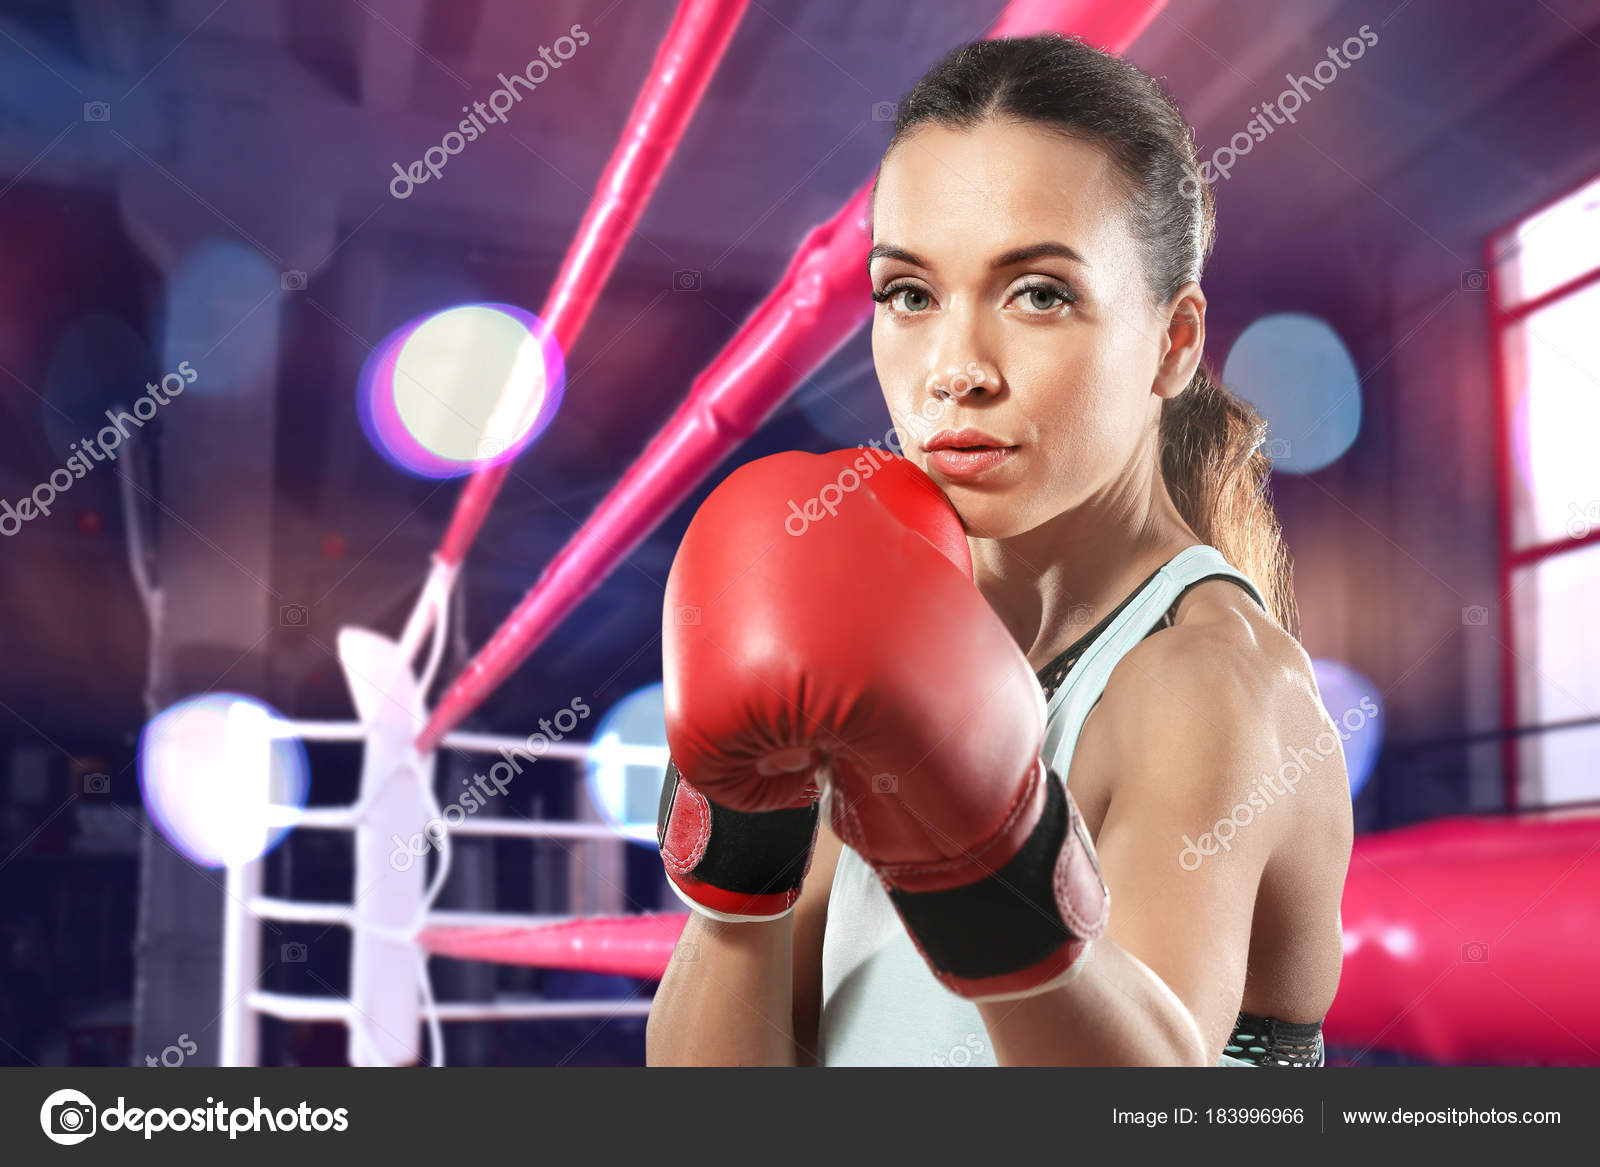 Young Woman Boxer Knocked Out Wiring Diagrams Ceiling Light Fixture Two Black Wires Elhouz Boxing Gloves Ring Background Stock Photo Belchonock Rh Depositphotos Com Holly Holm